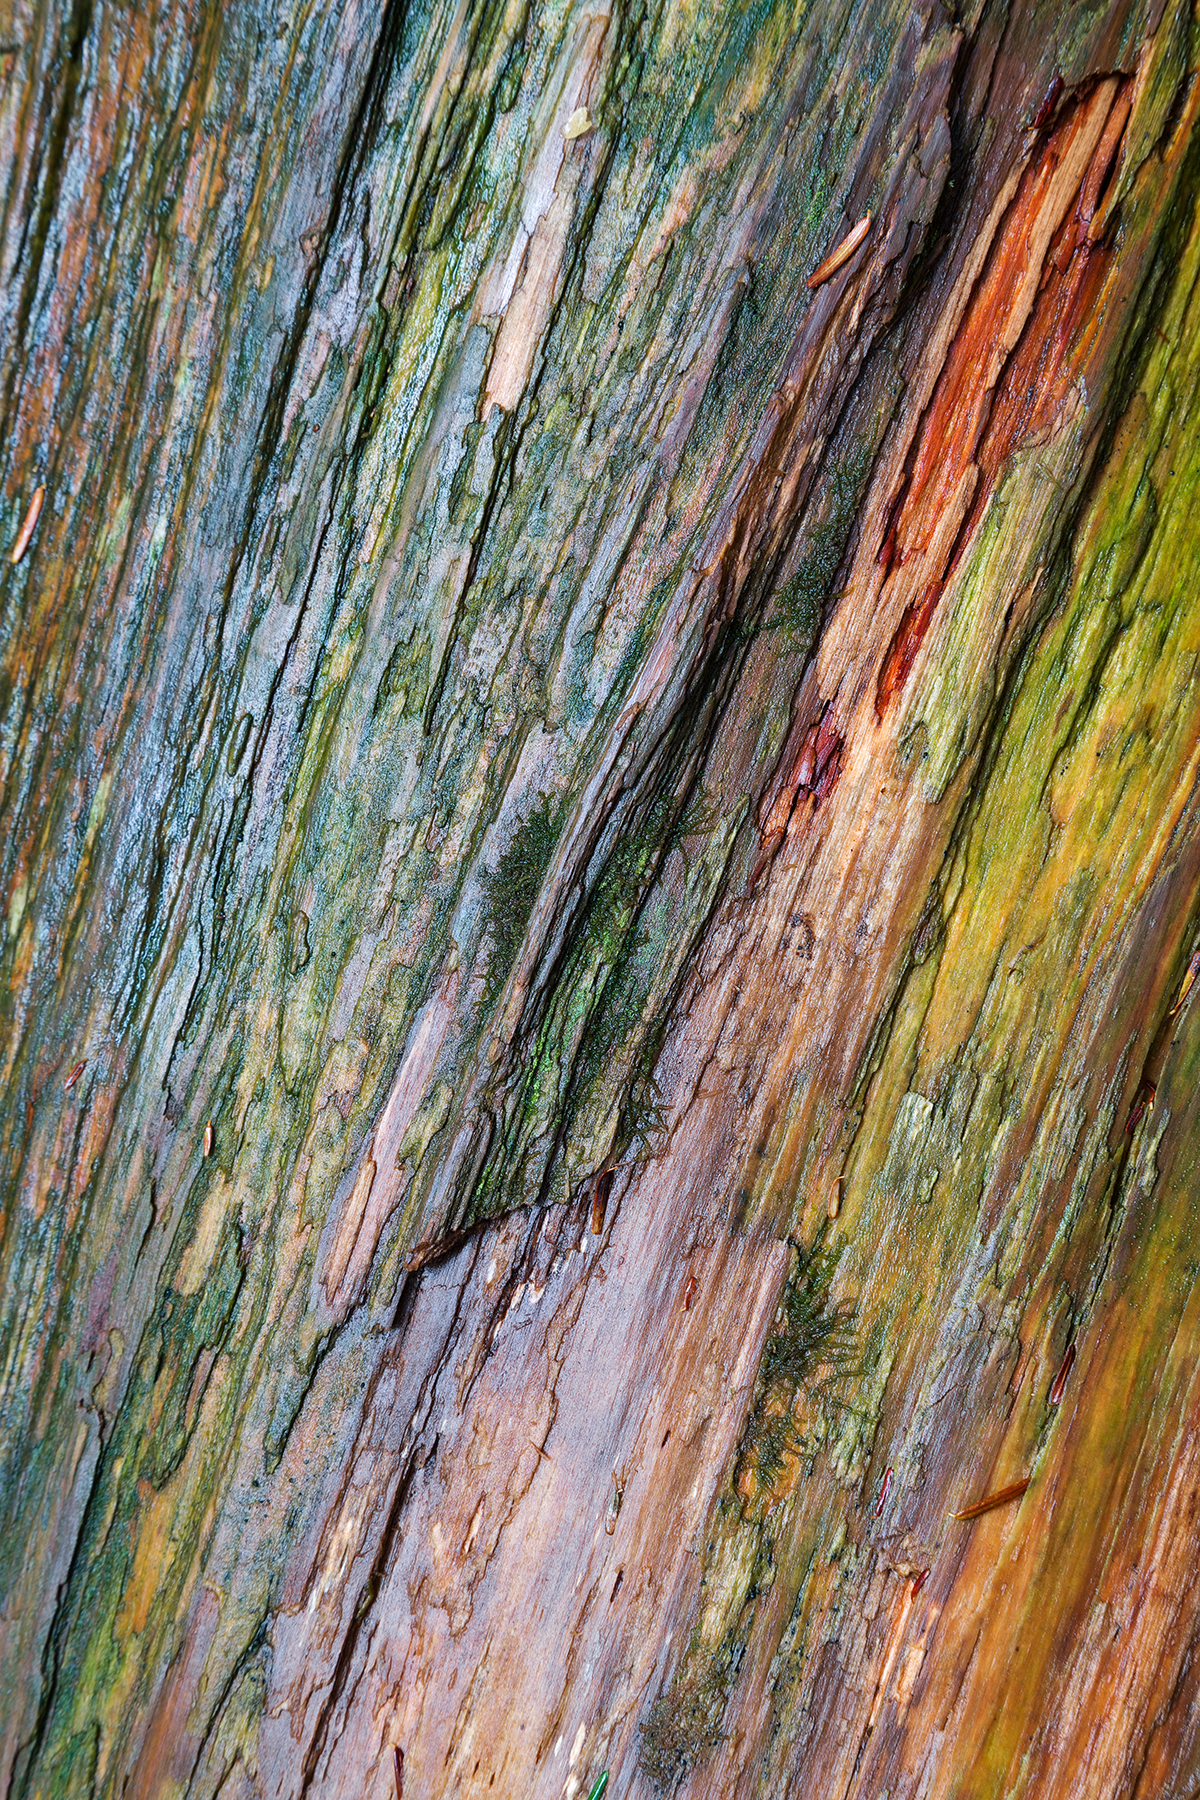 Water colored wood texture photo